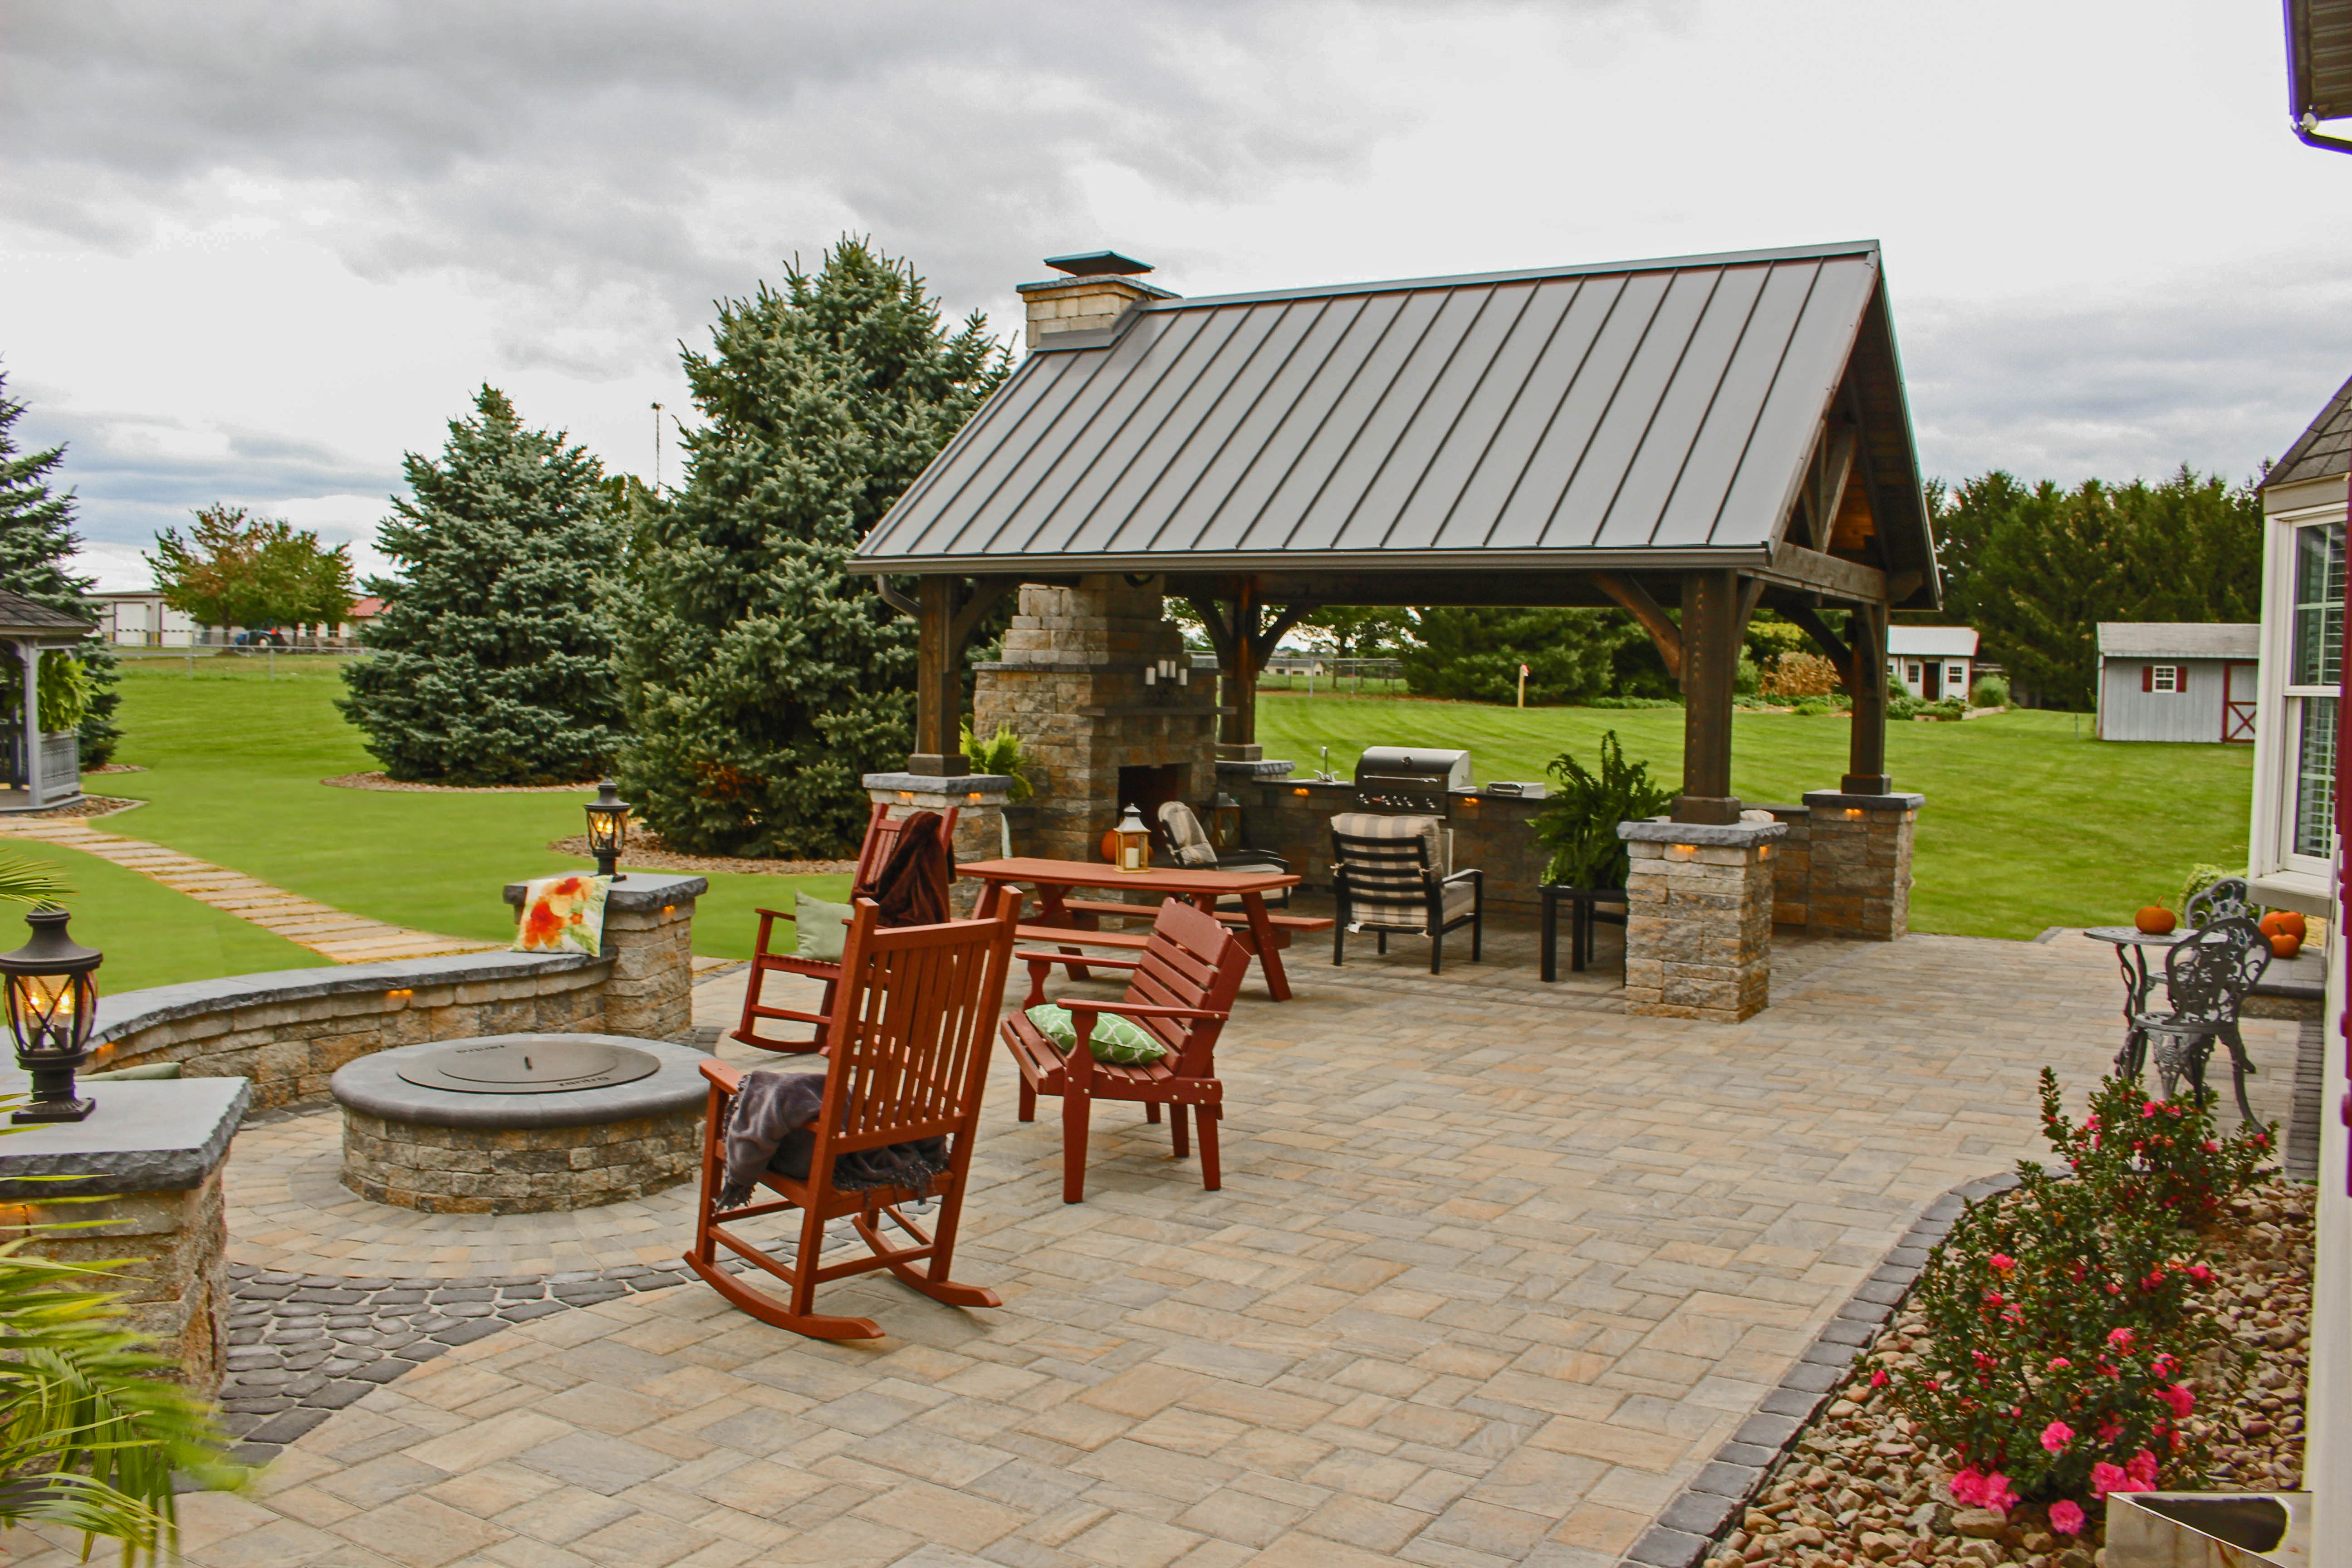 Outdoor Patio with Pavilion | See the Photos and Get a ... on Outdoor Patio Pavilion id=64225